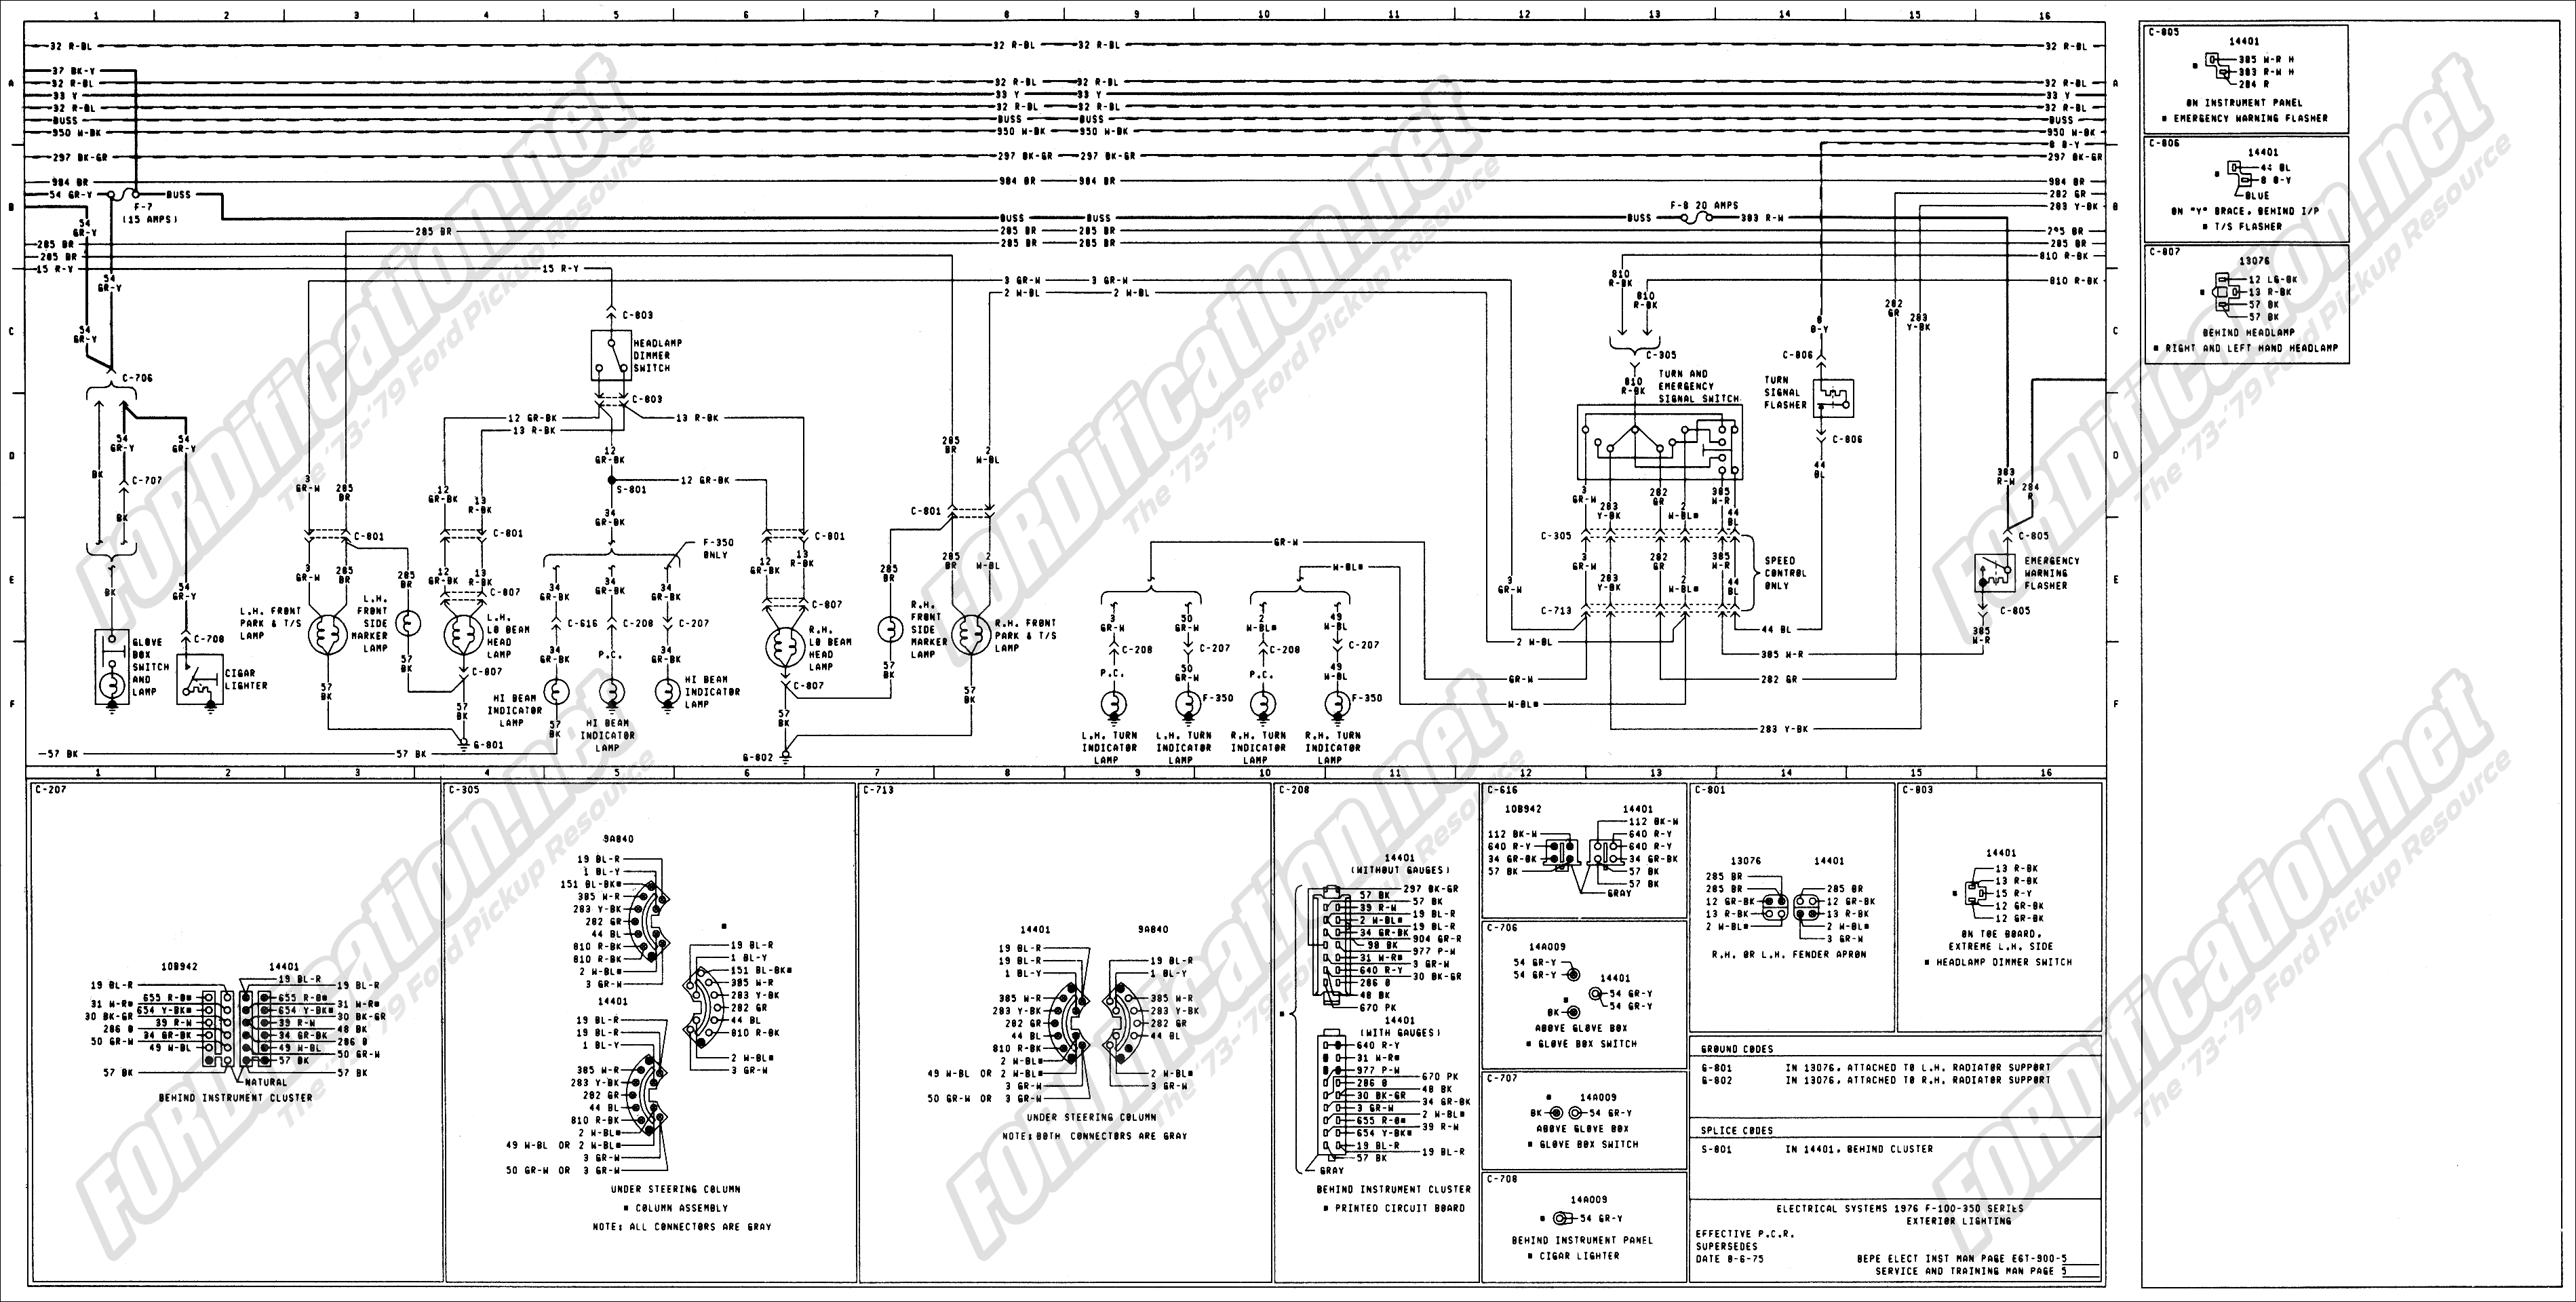 wiring_76master_5of9 1973 1979 ford truck wiring diagrams & schematics fordification net  at soozxer.org